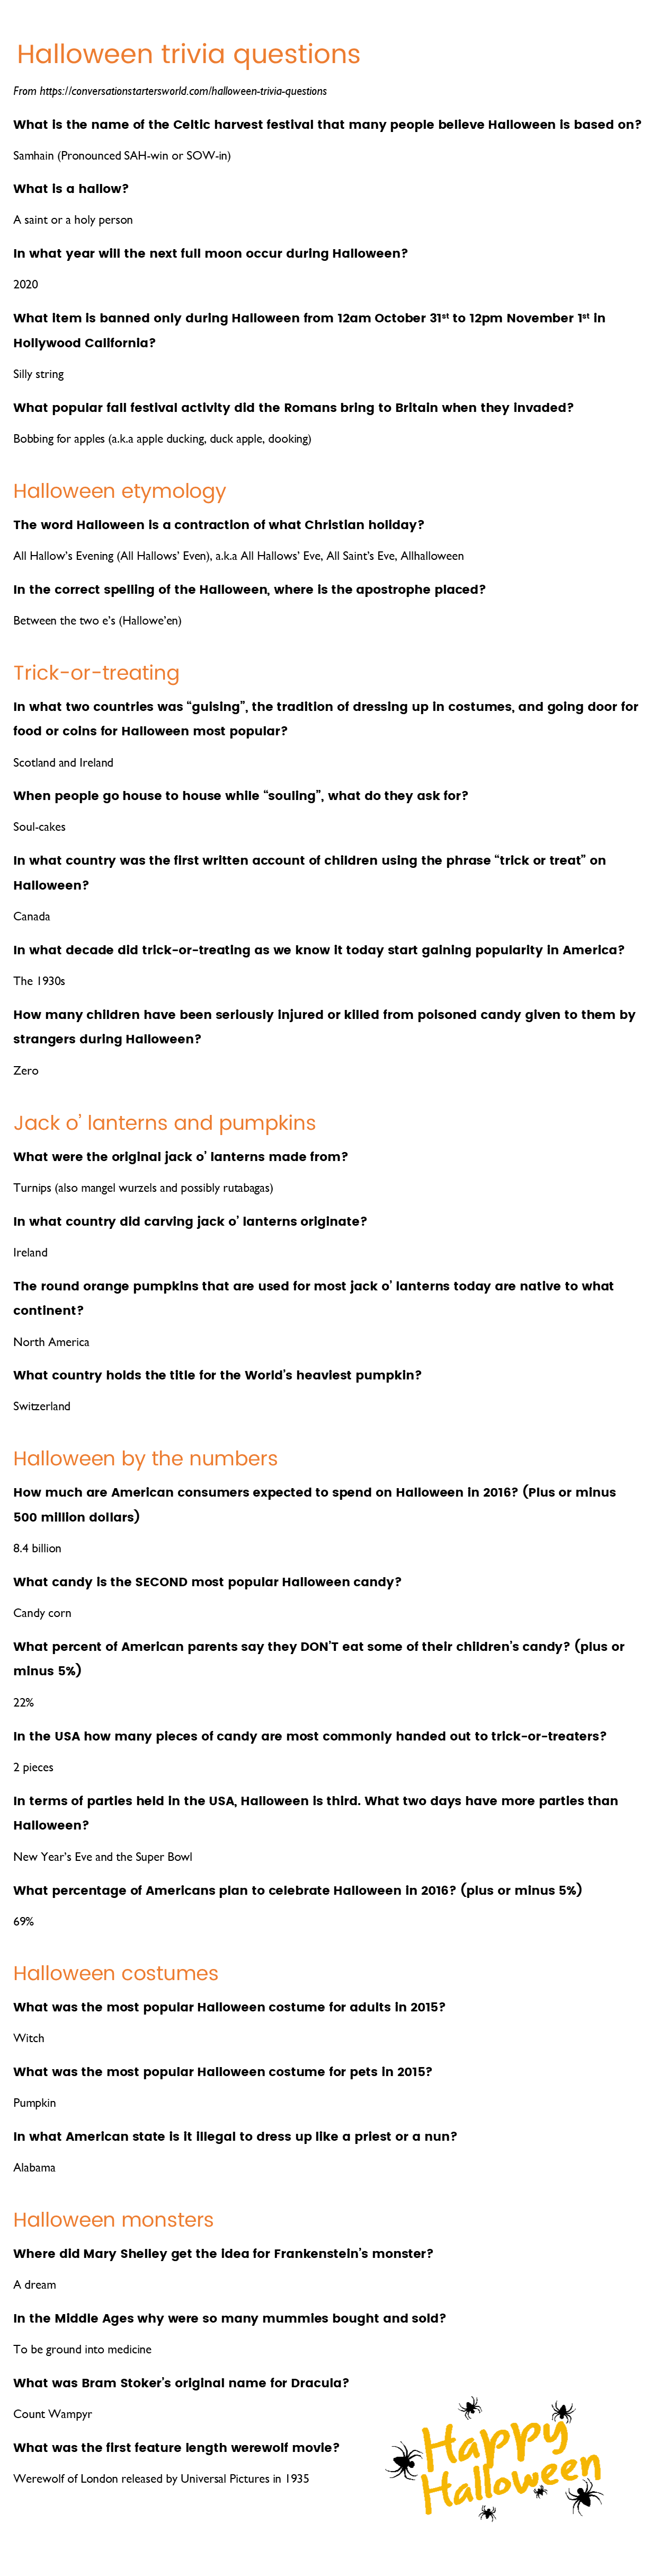 Halloween Trivia 2020 29 Challenging Halloween Trivia Questions   How many can you answer?